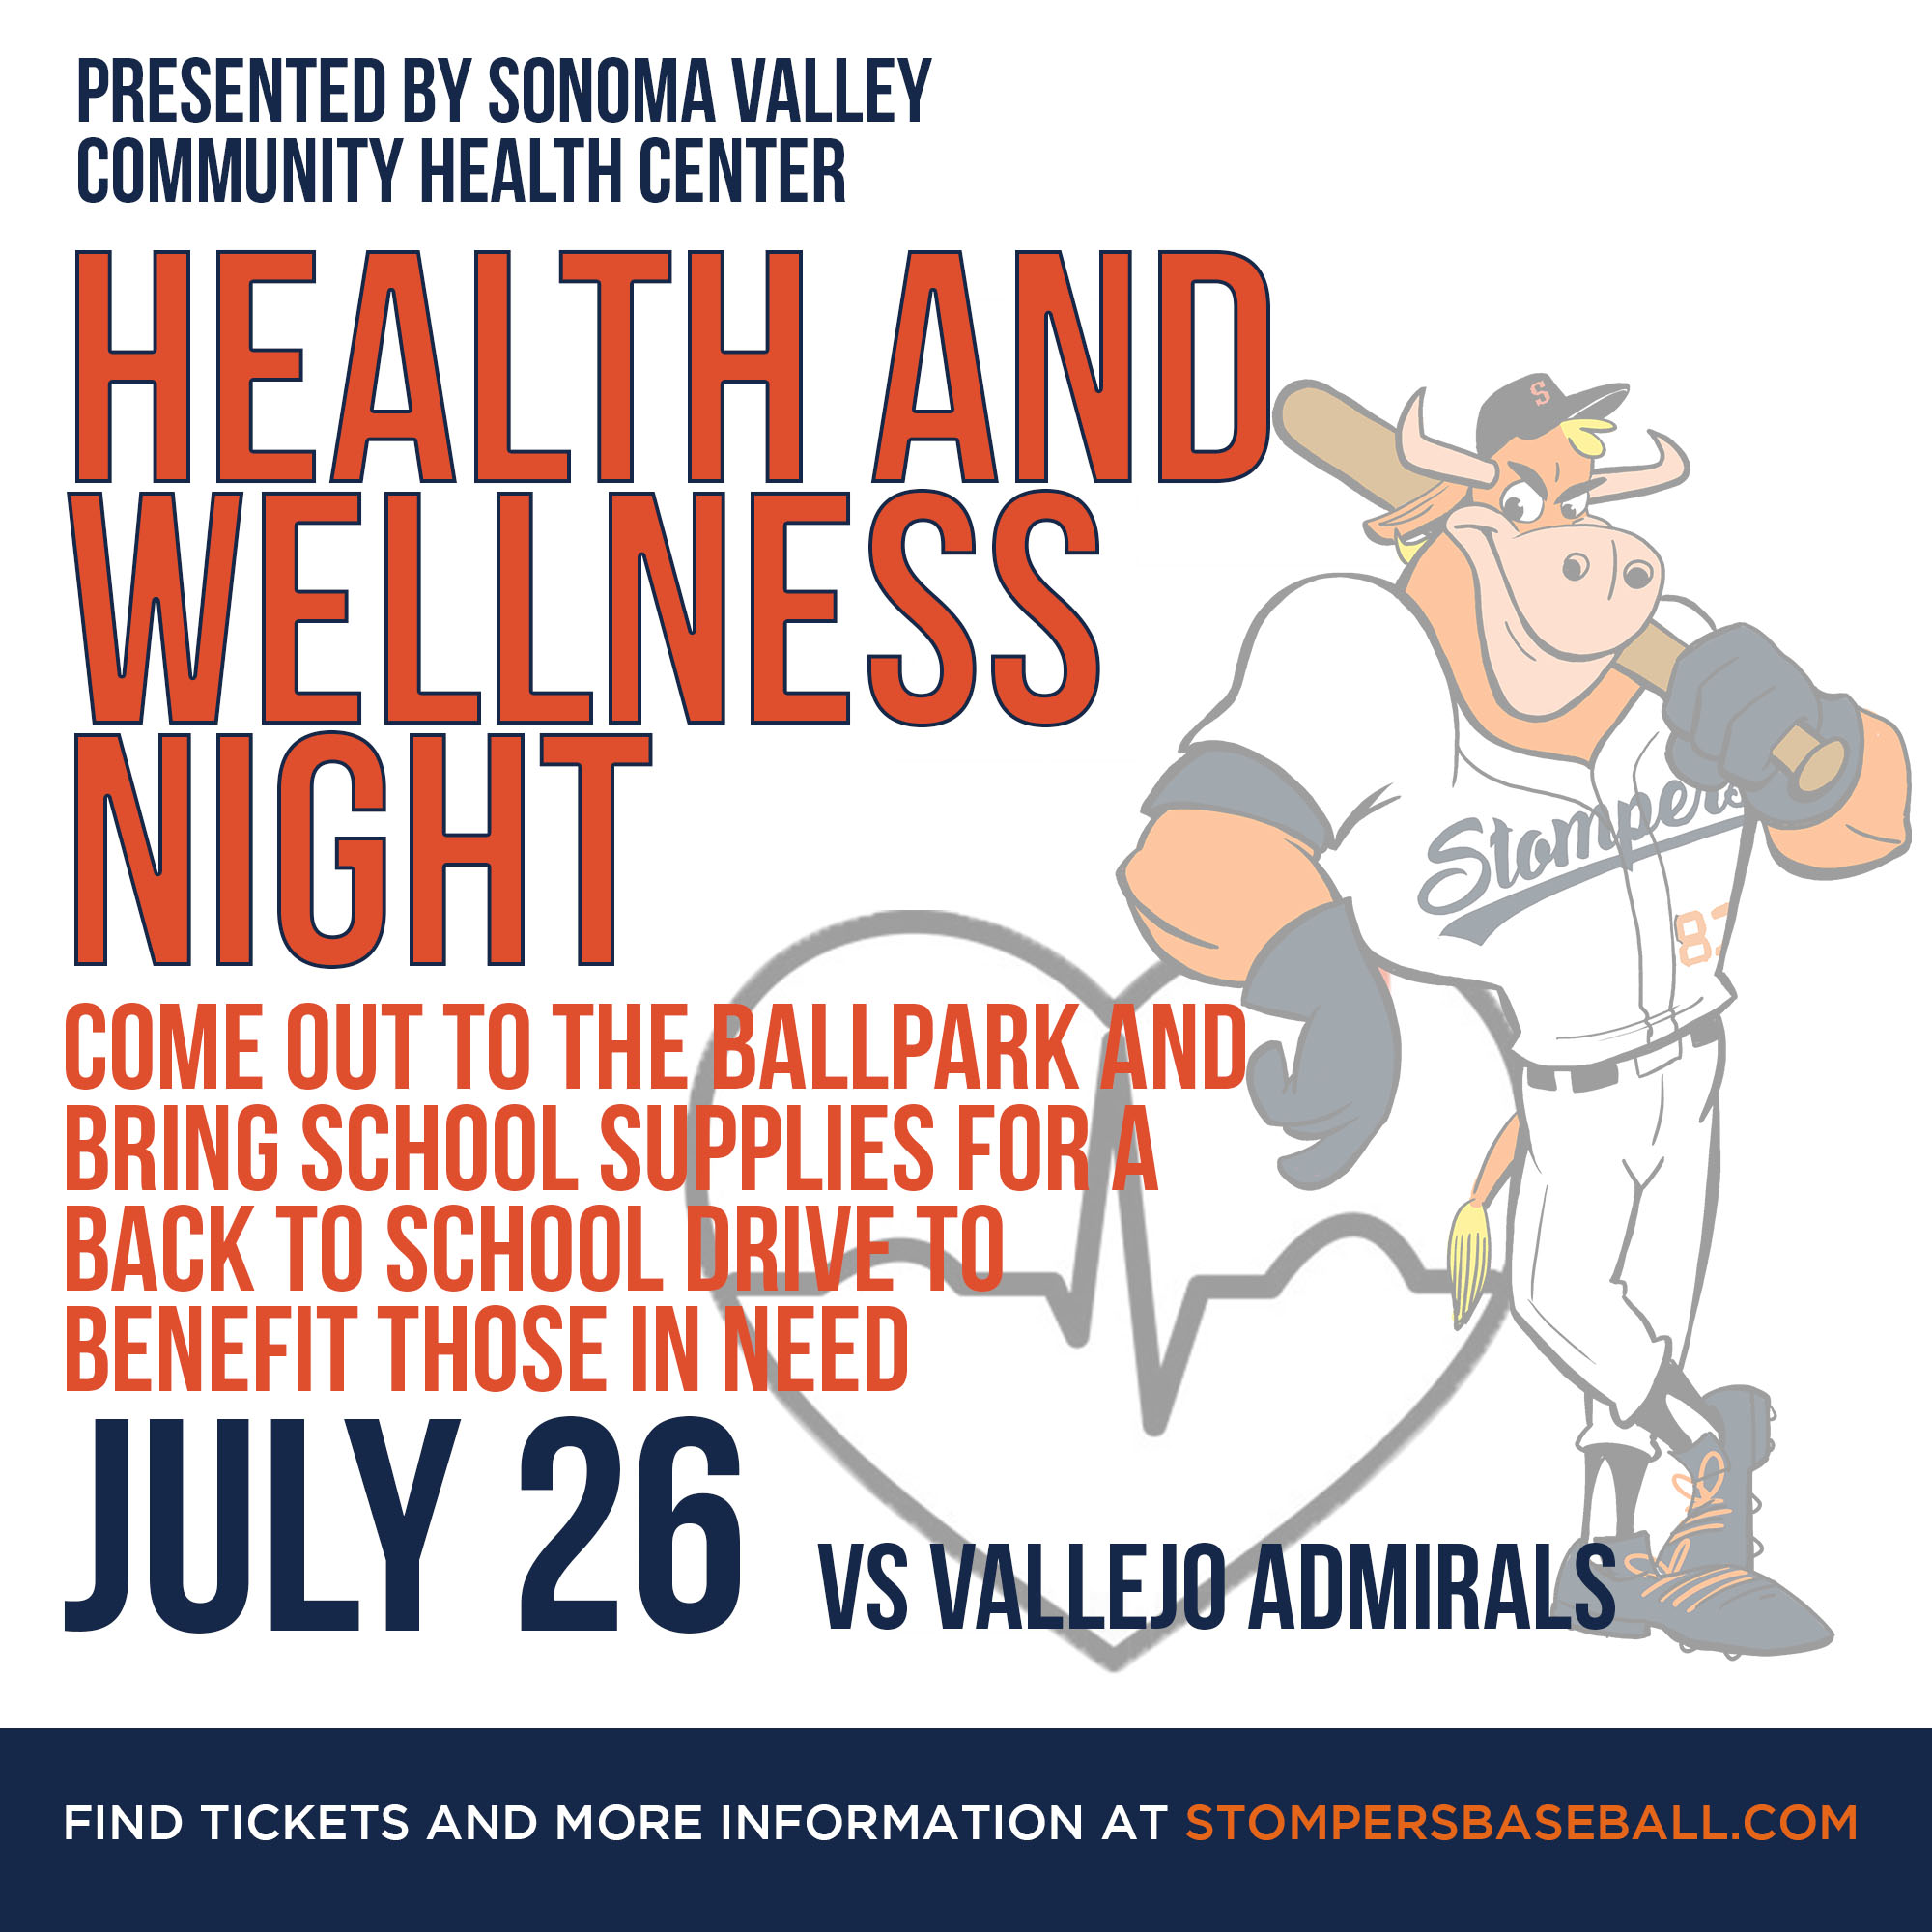 July 26: Health and Wellness Night - Health and Wellness Night at Palooza Park at Arnold Field presented by Sonoma Valley Health Community Center. We will also be having a drive and collecting school supplies for students!